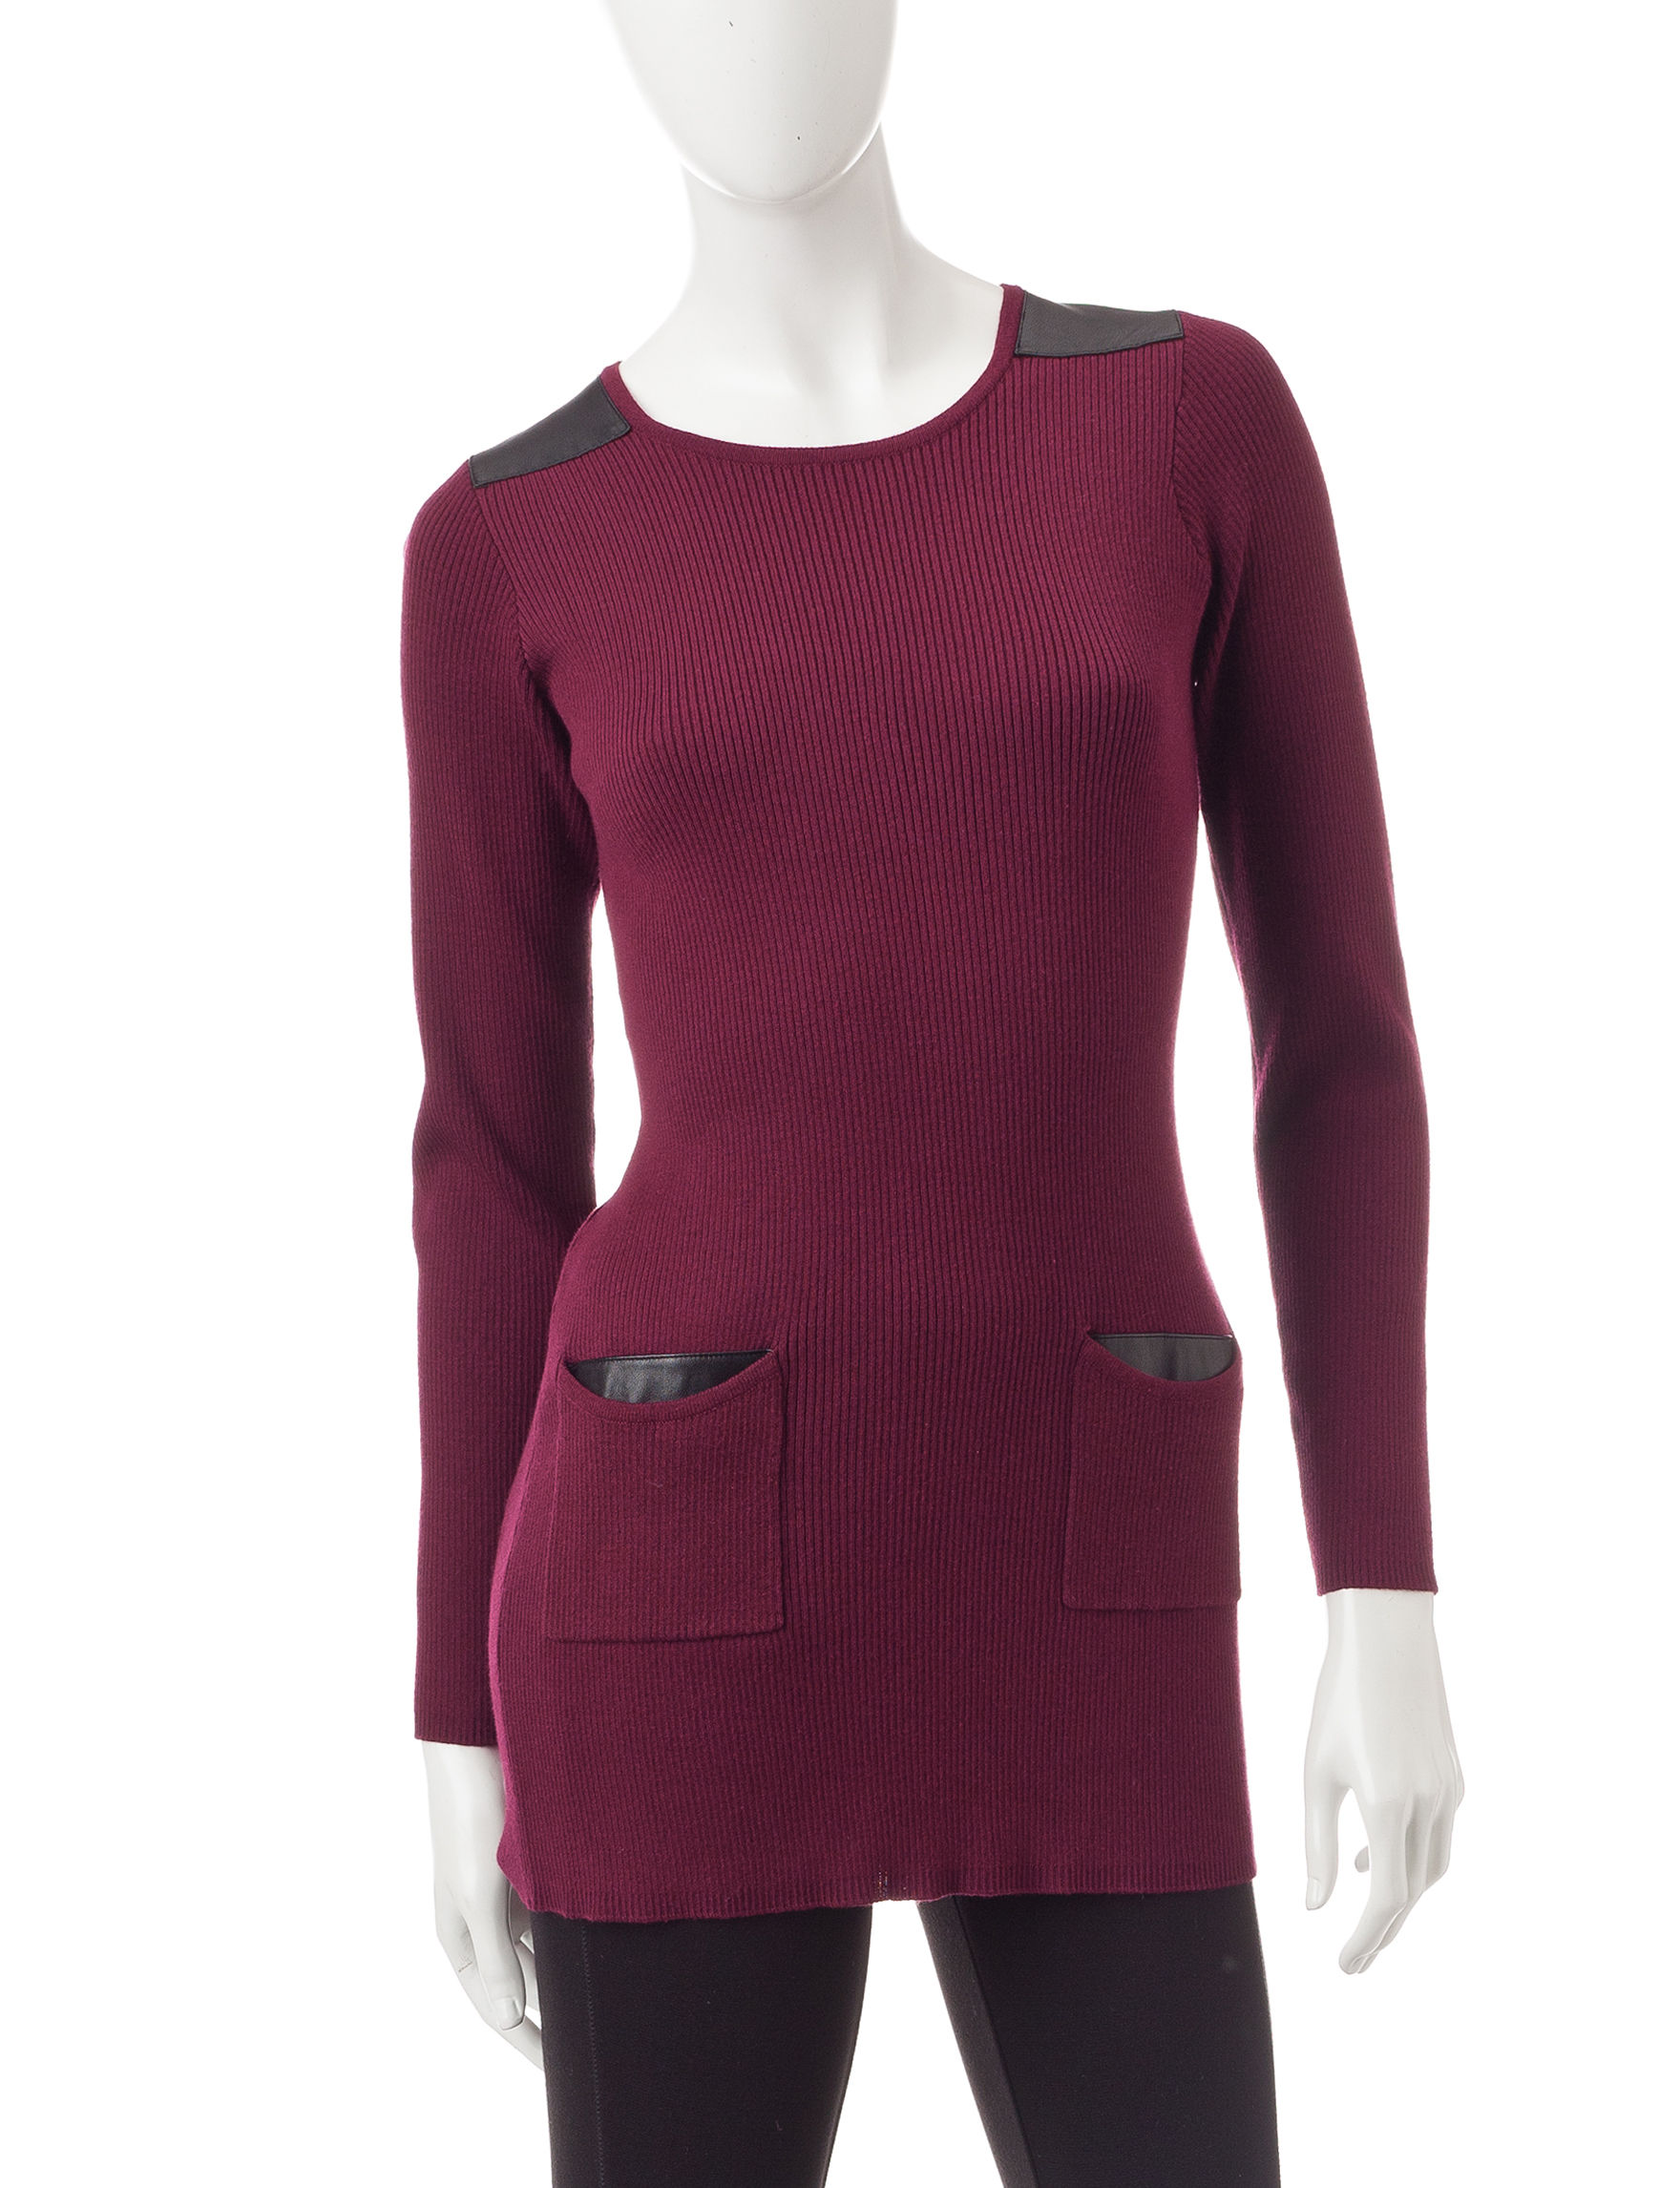 A. Byer Dark Red Tunics